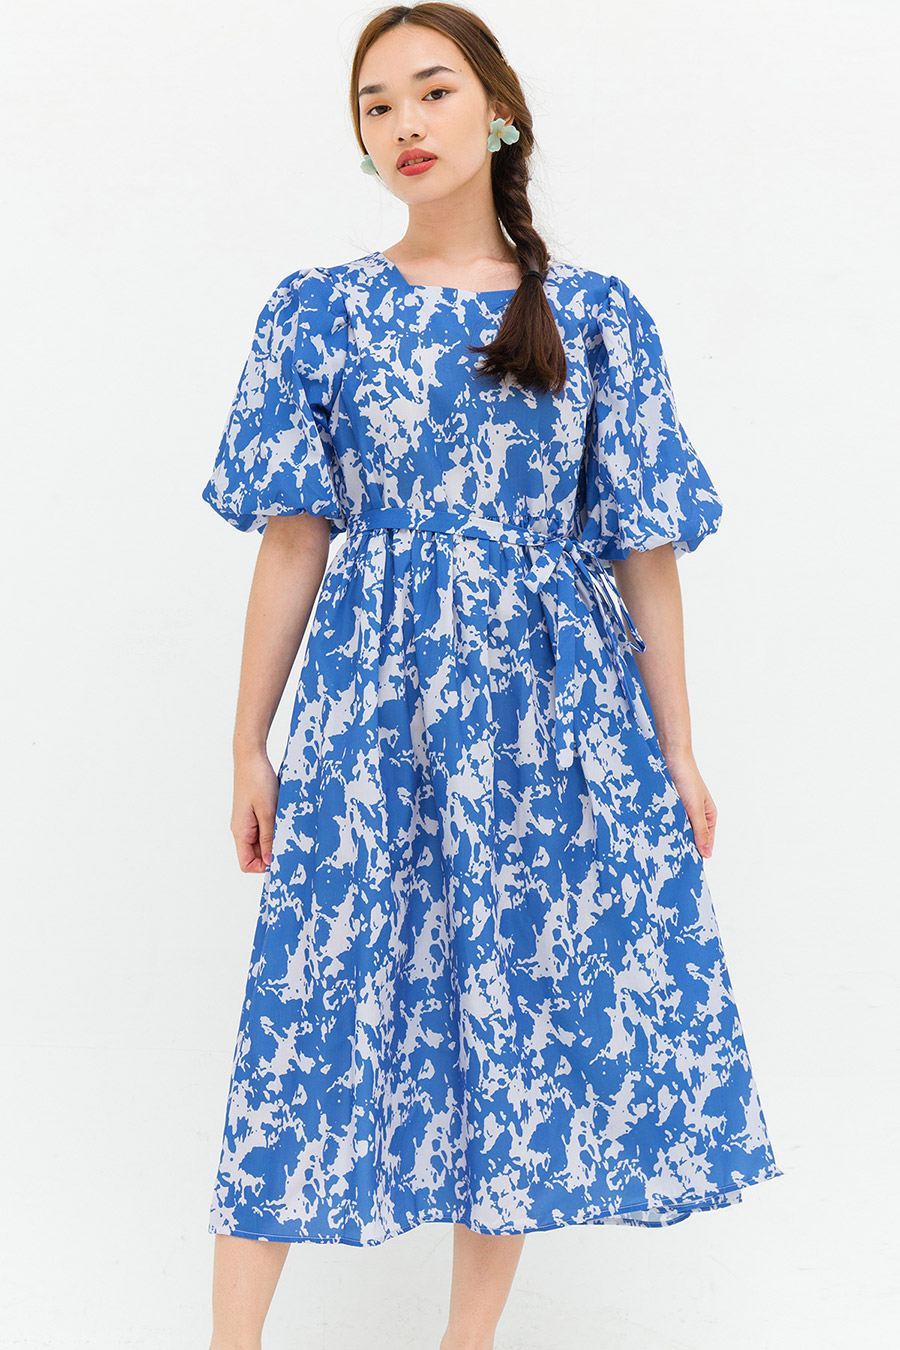 WELCH DRESS - LAGOON